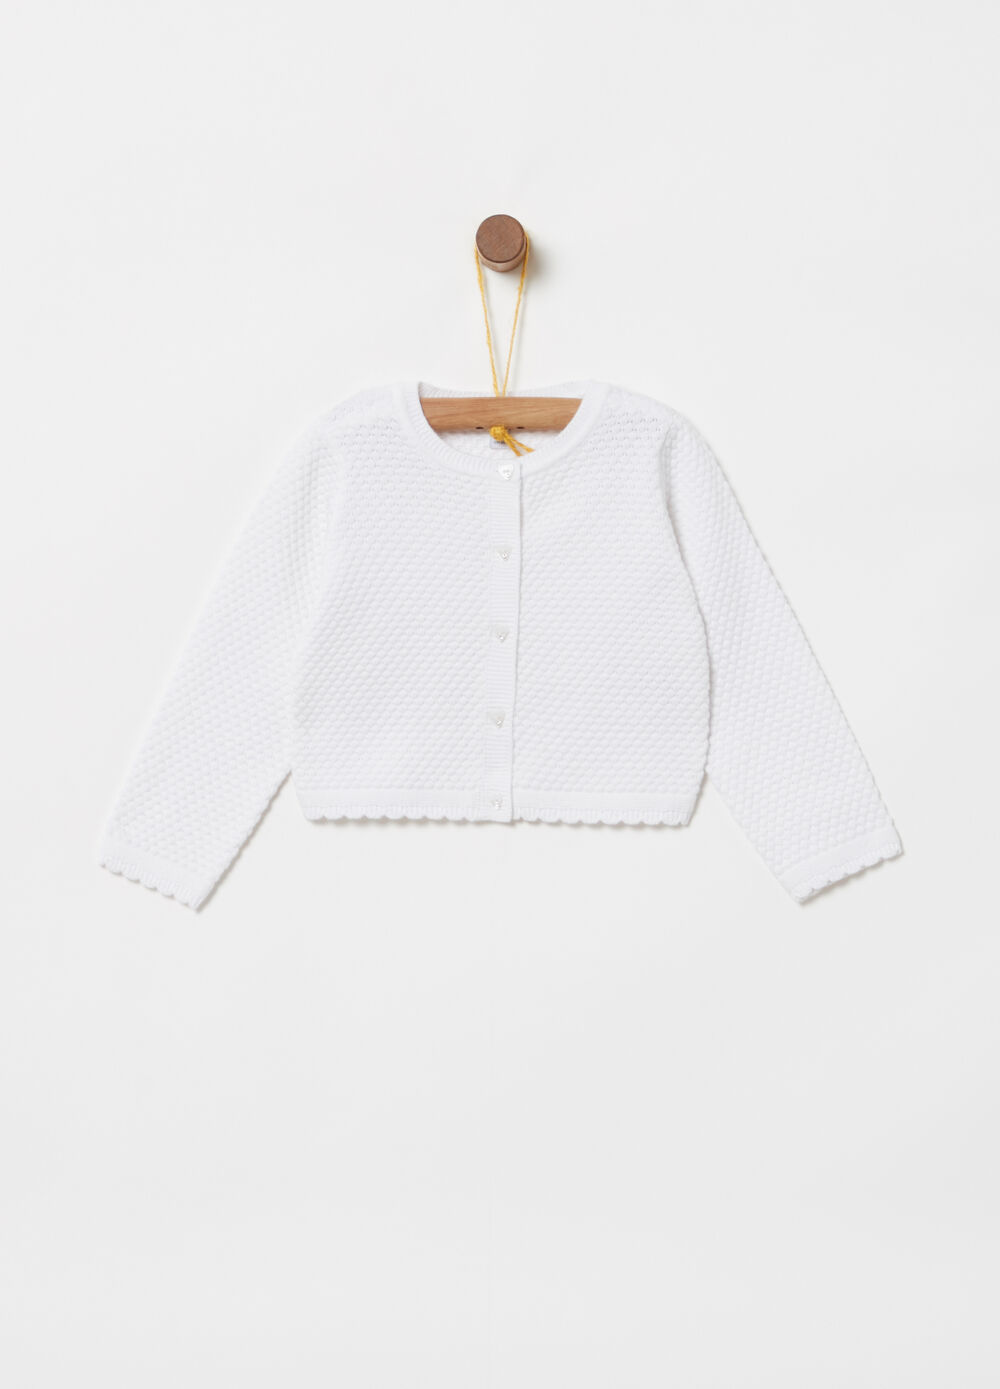 ***Better Cotton Initiative cardigan with scallop edge